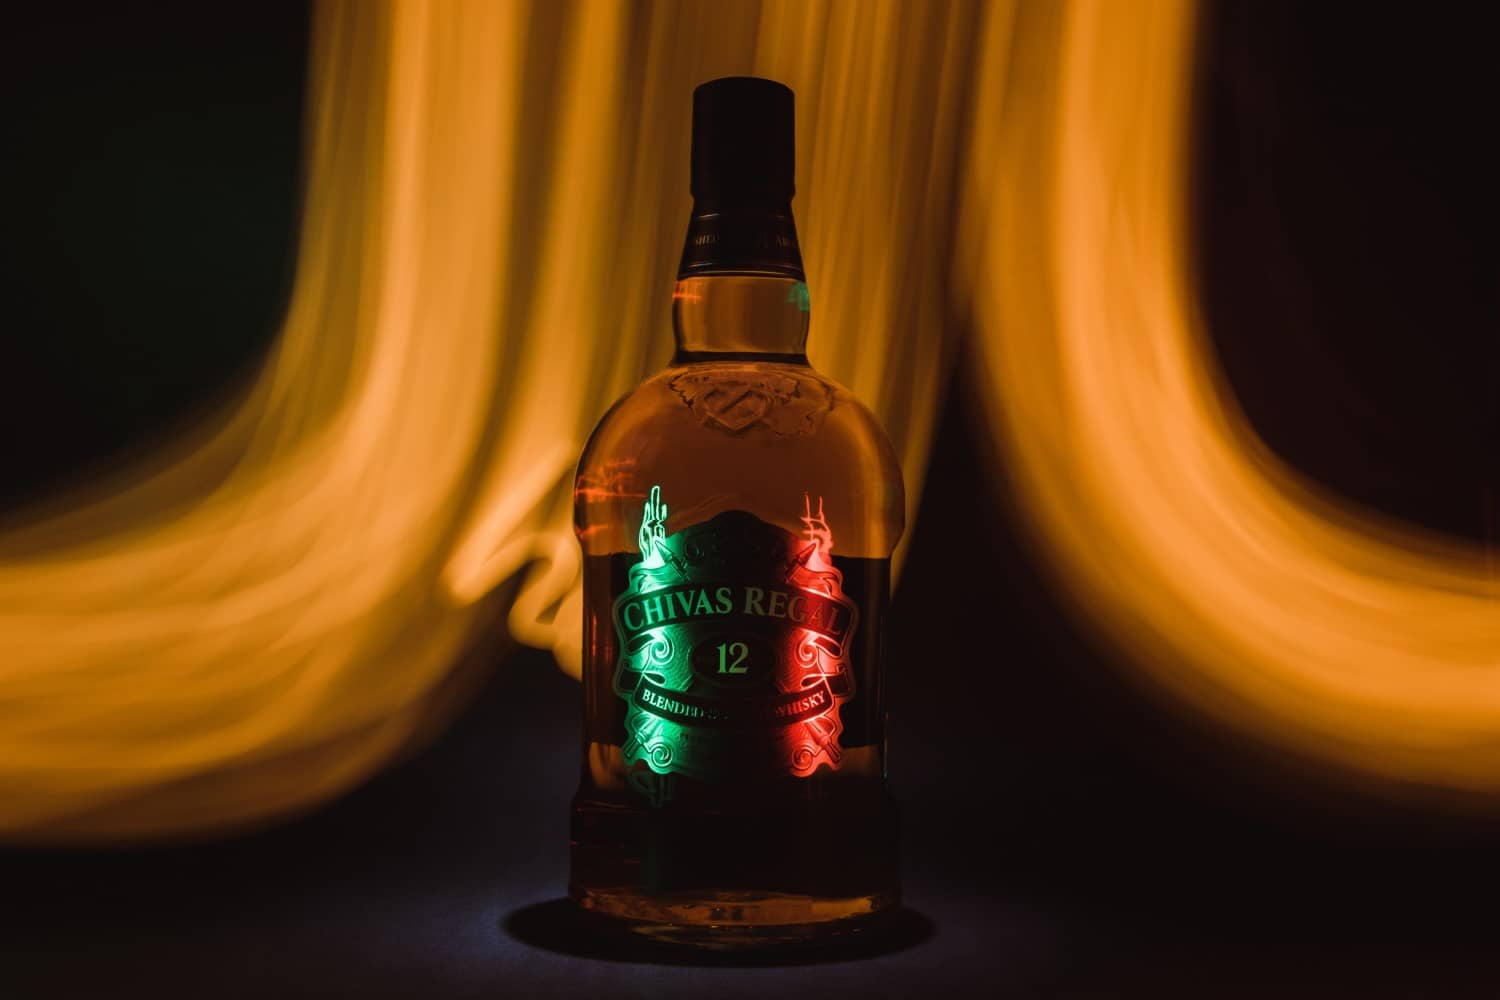 Bottle of Chivas Regal 12 years with light effects